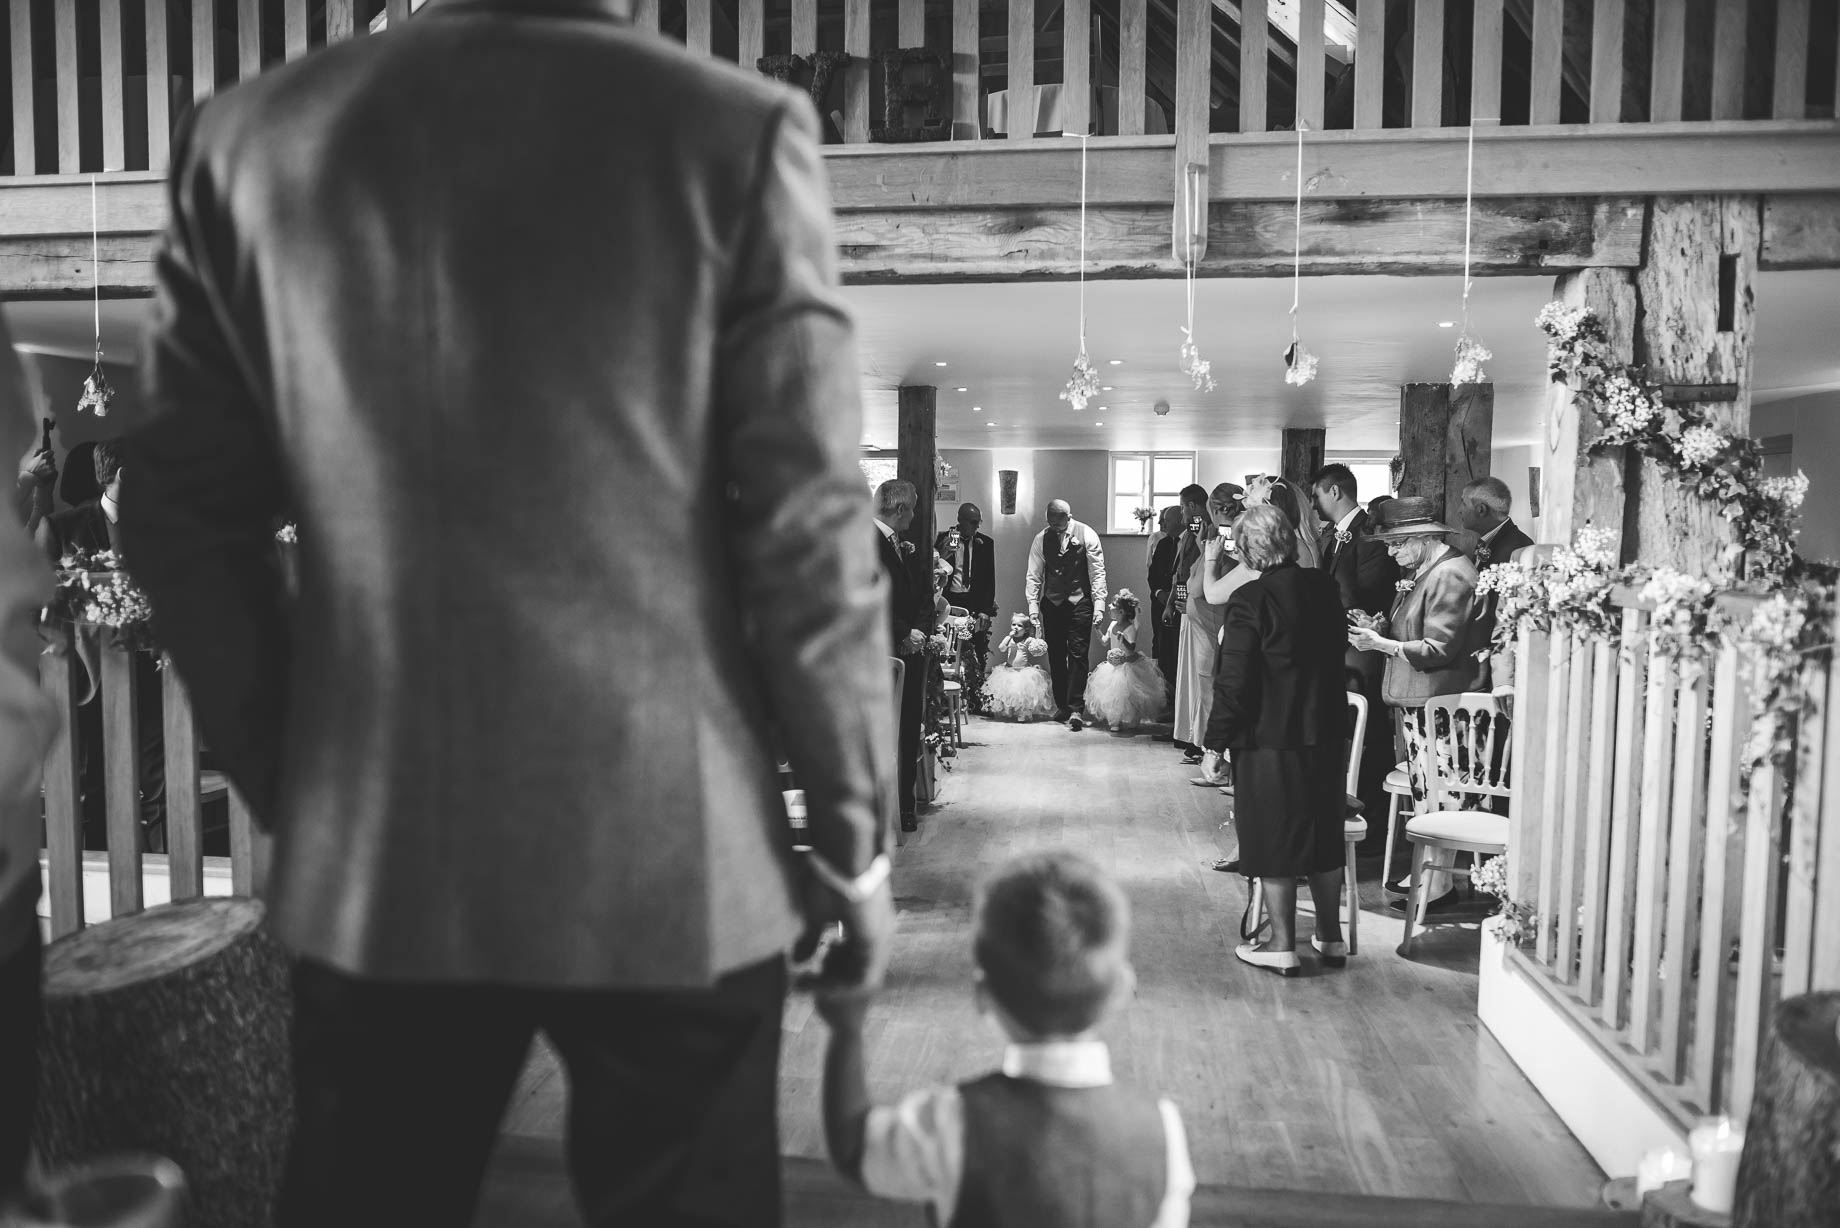 Bury Court Barn wedding photography - Guy Collier - Kate and Russ (64 of 187)